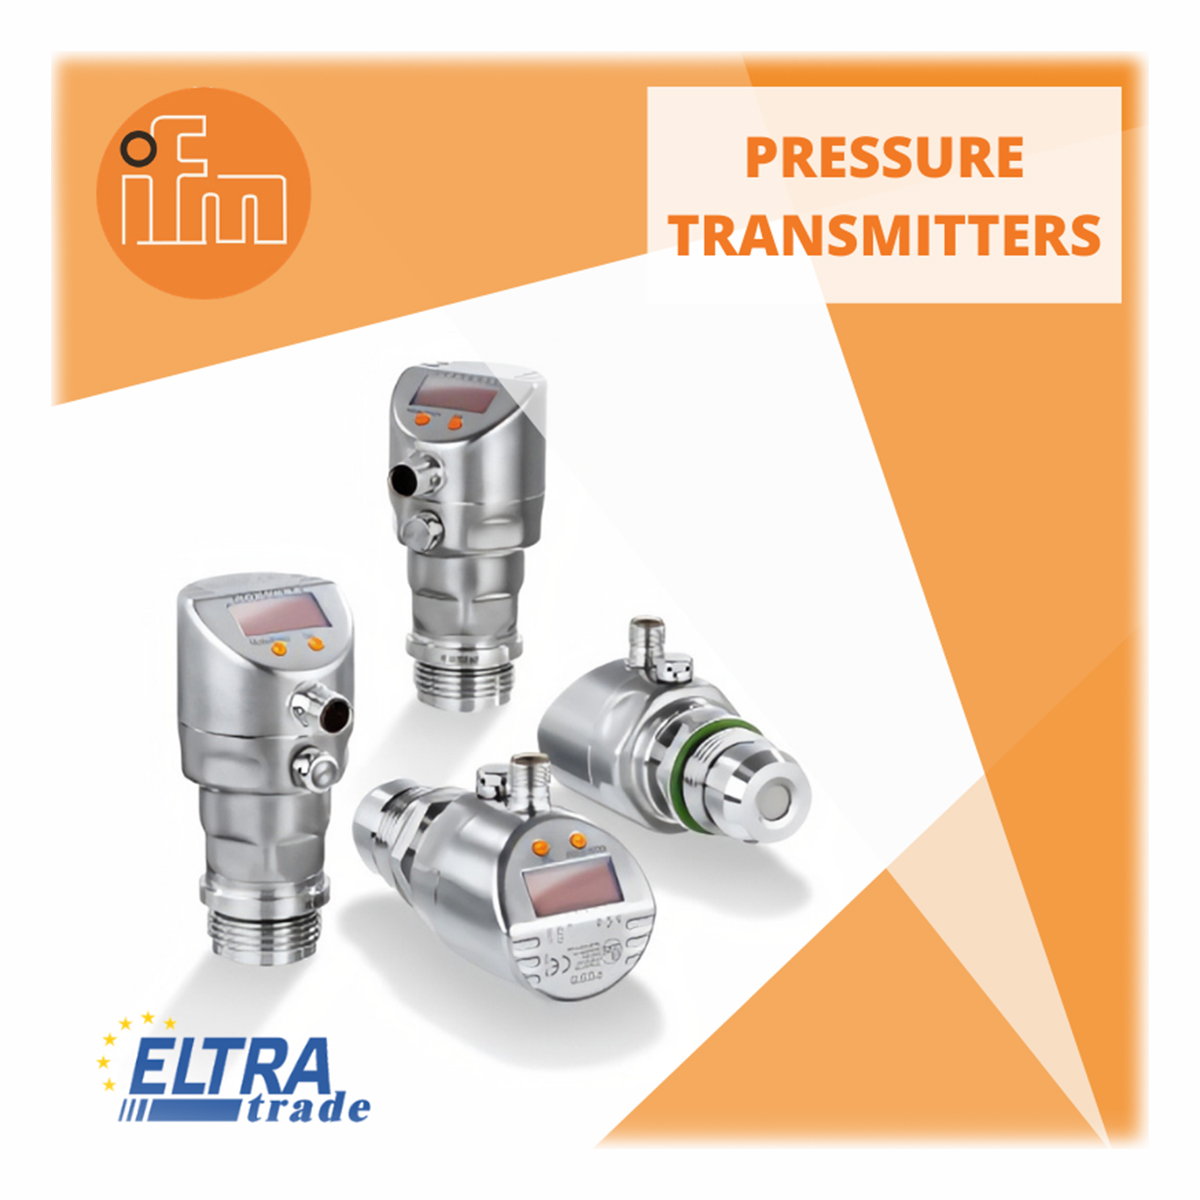 ifm pressure transmitters photo